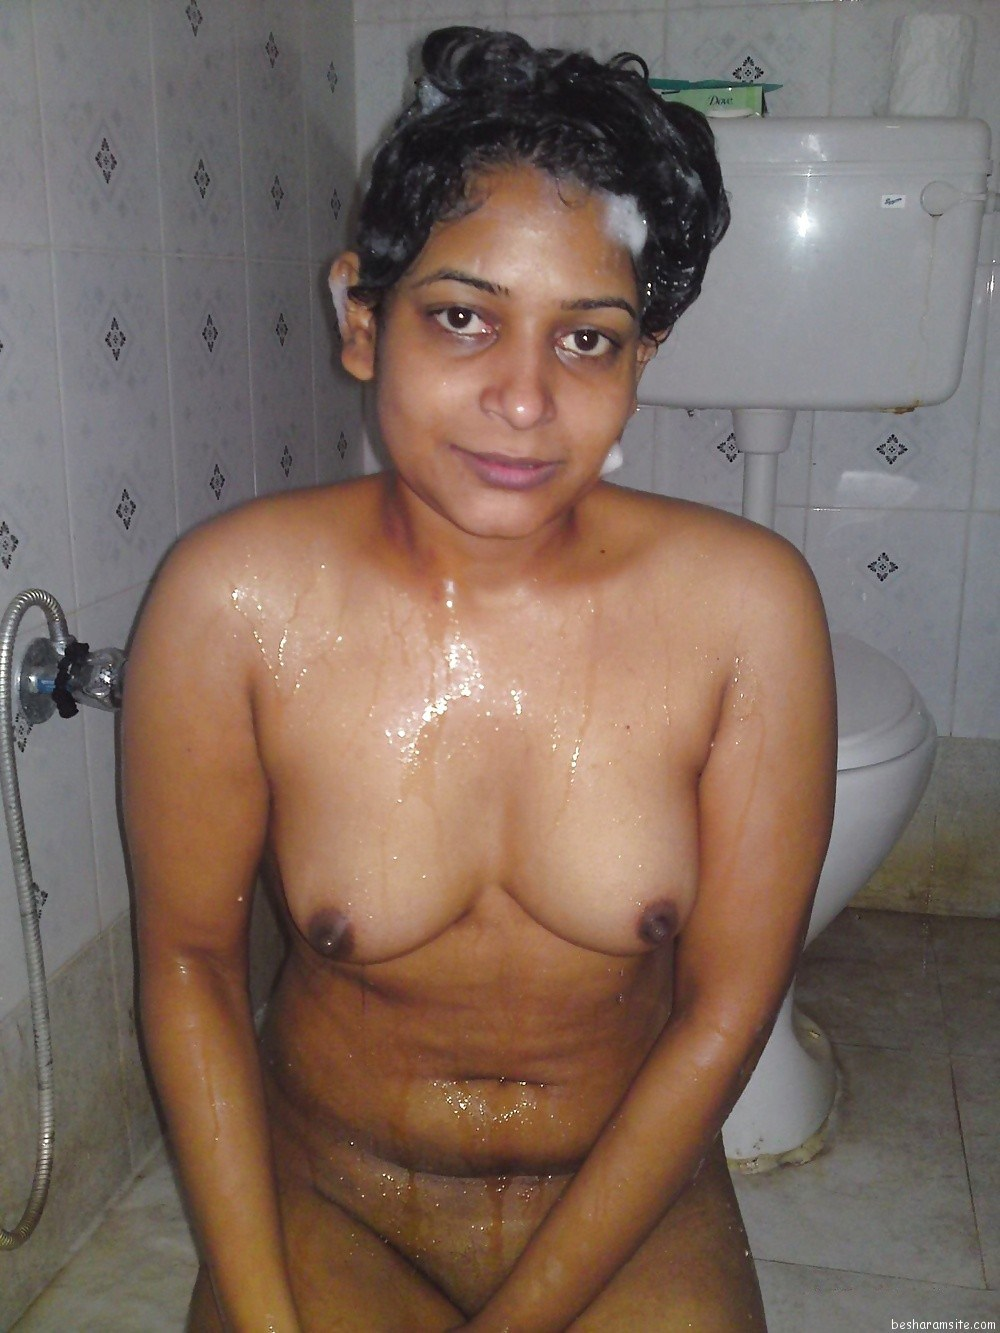 from Alejandro indian washroom nude picture